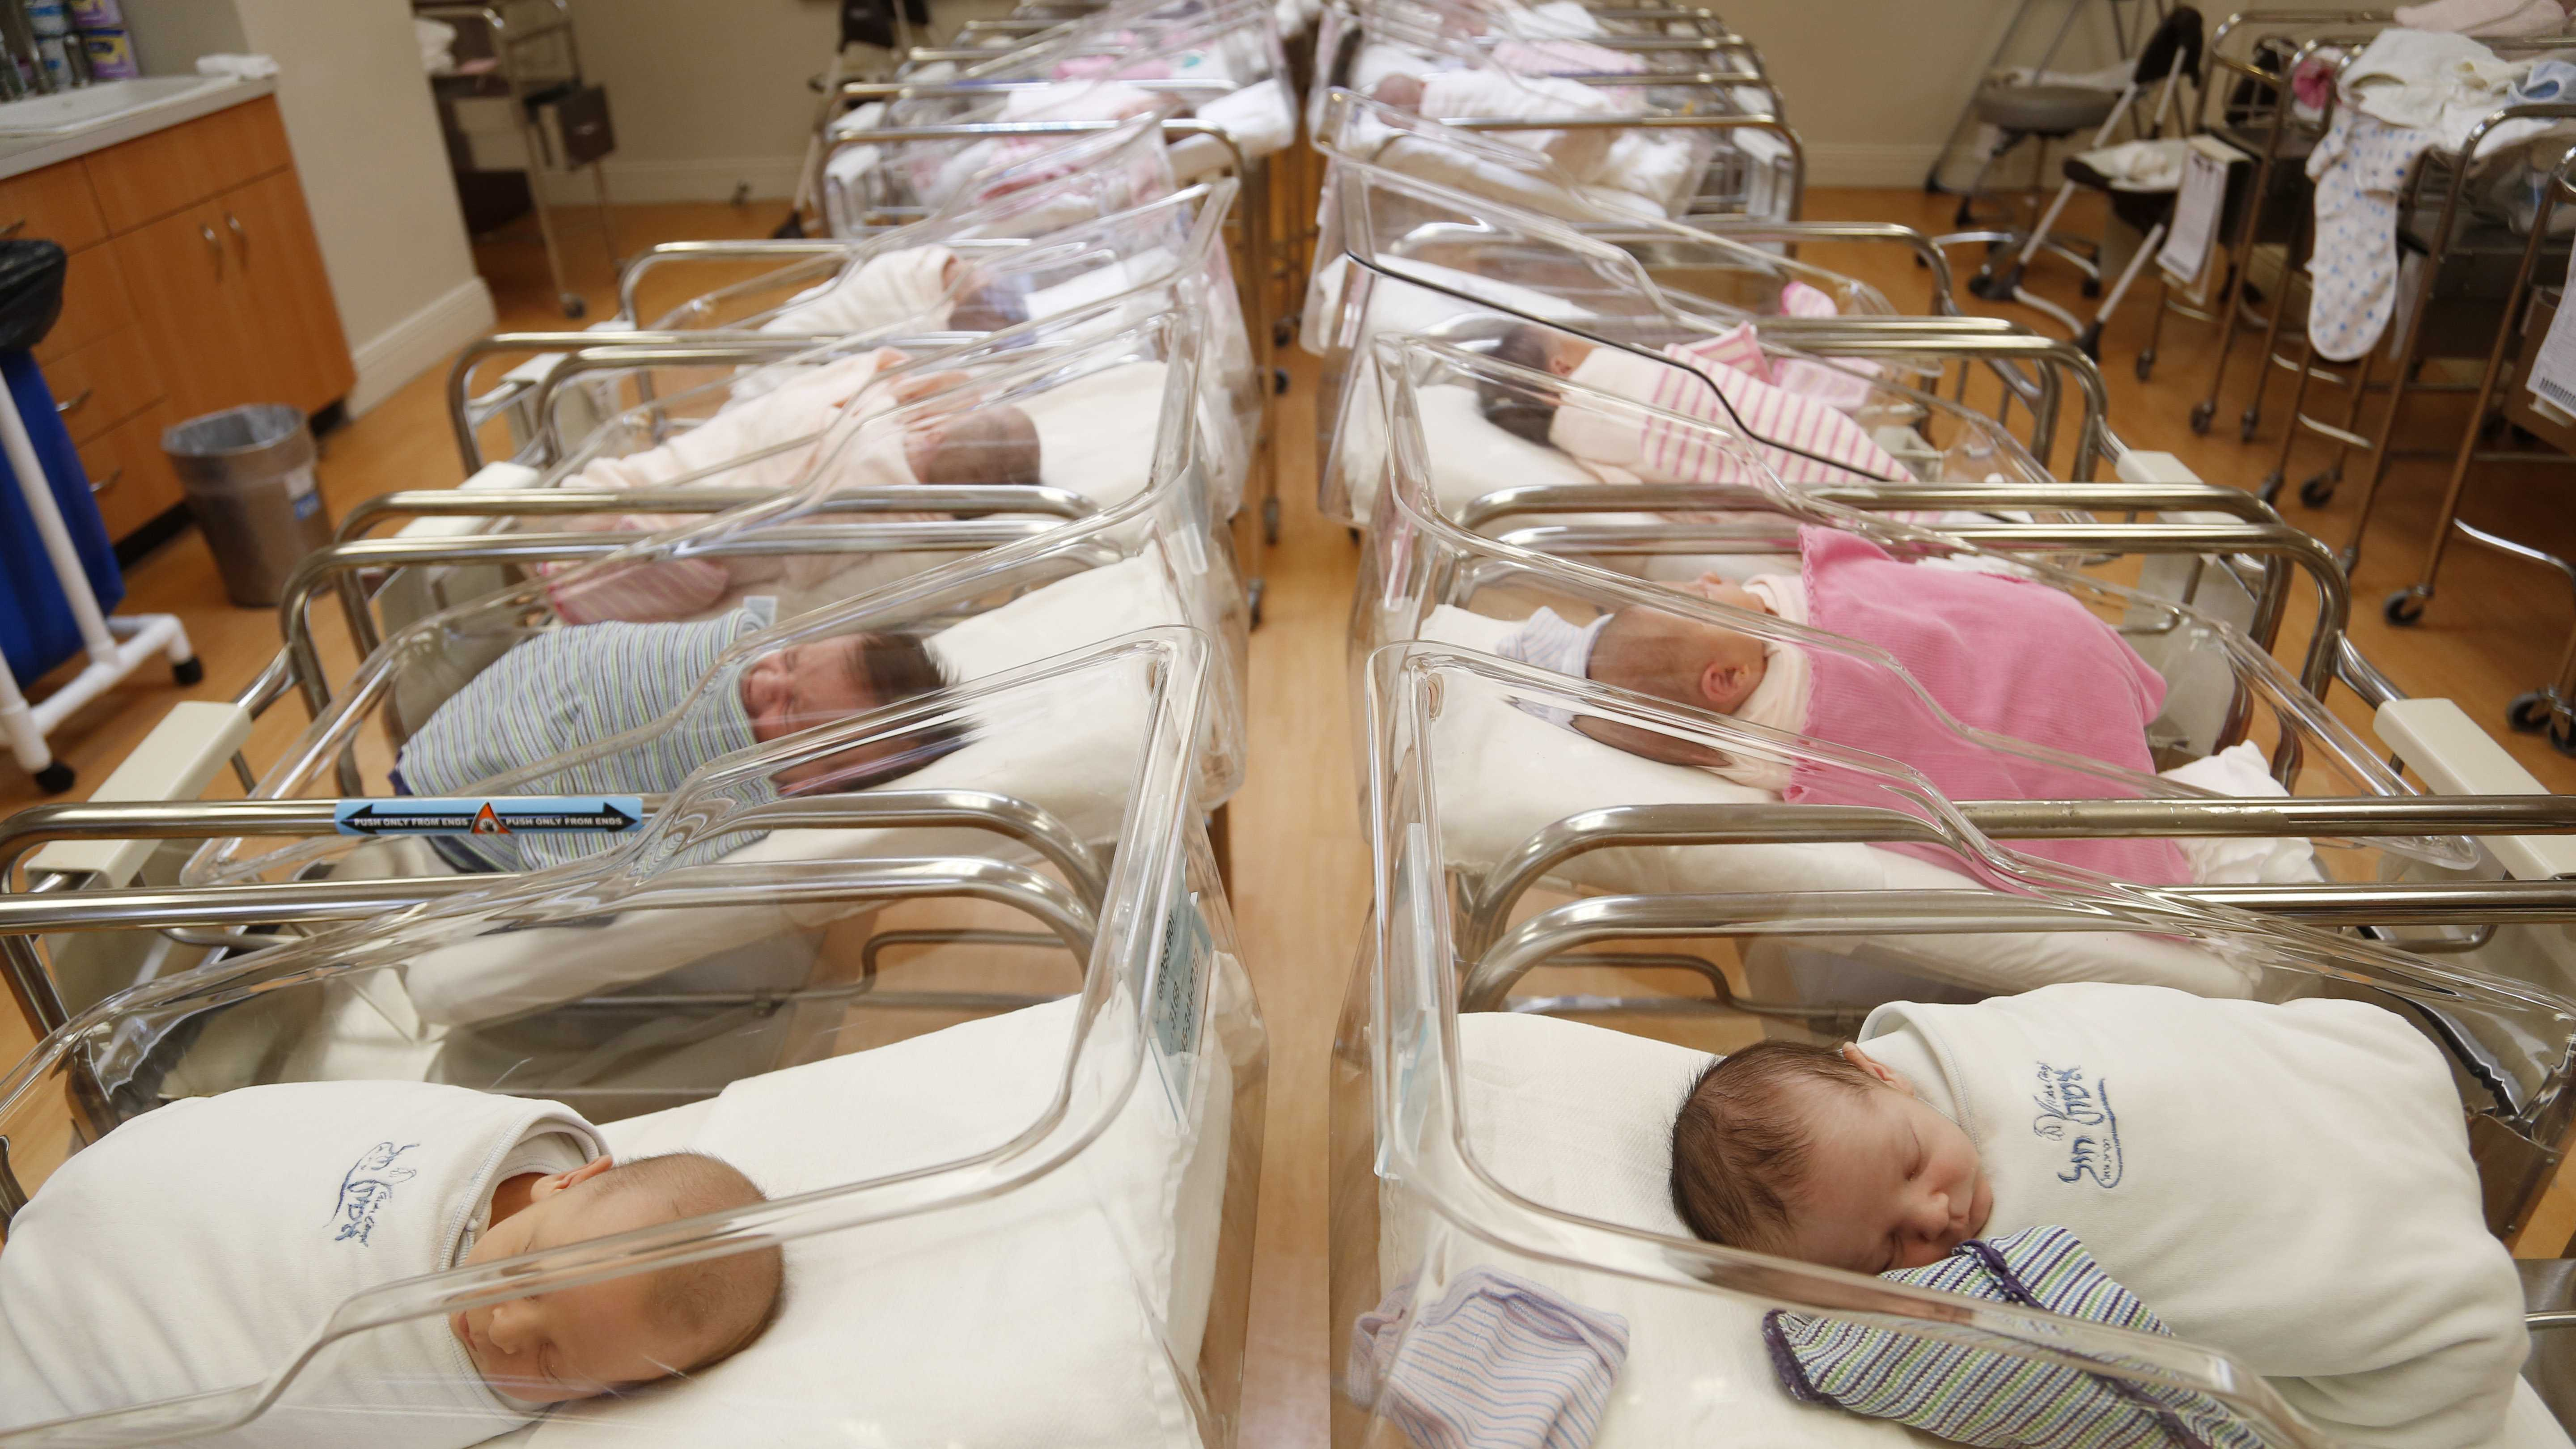 Newborns rest in the nursery of Aishes Chayil, a postpartum recovery center, in Kiryas Joel, N.Y., Thursday, Feb. 16, 2017.